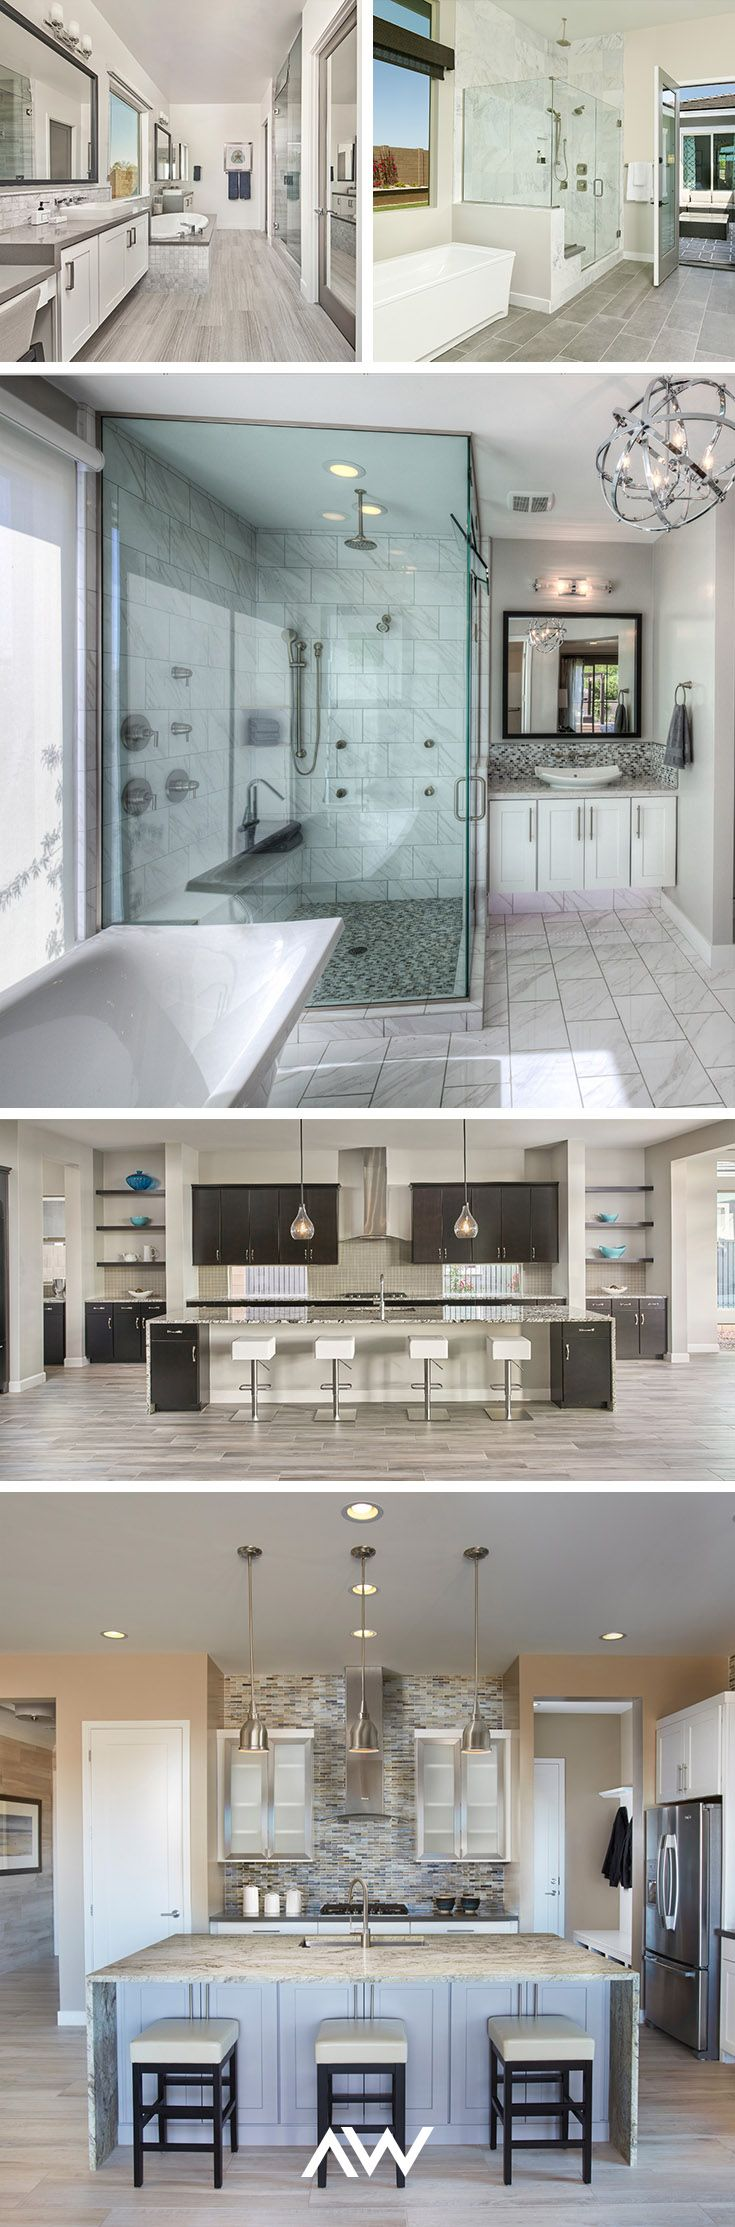 Flooring And Tile Dont Just Have To Be Functional They Can Beautiful As Well From Patterned Unique Finishes Find Inspiration For